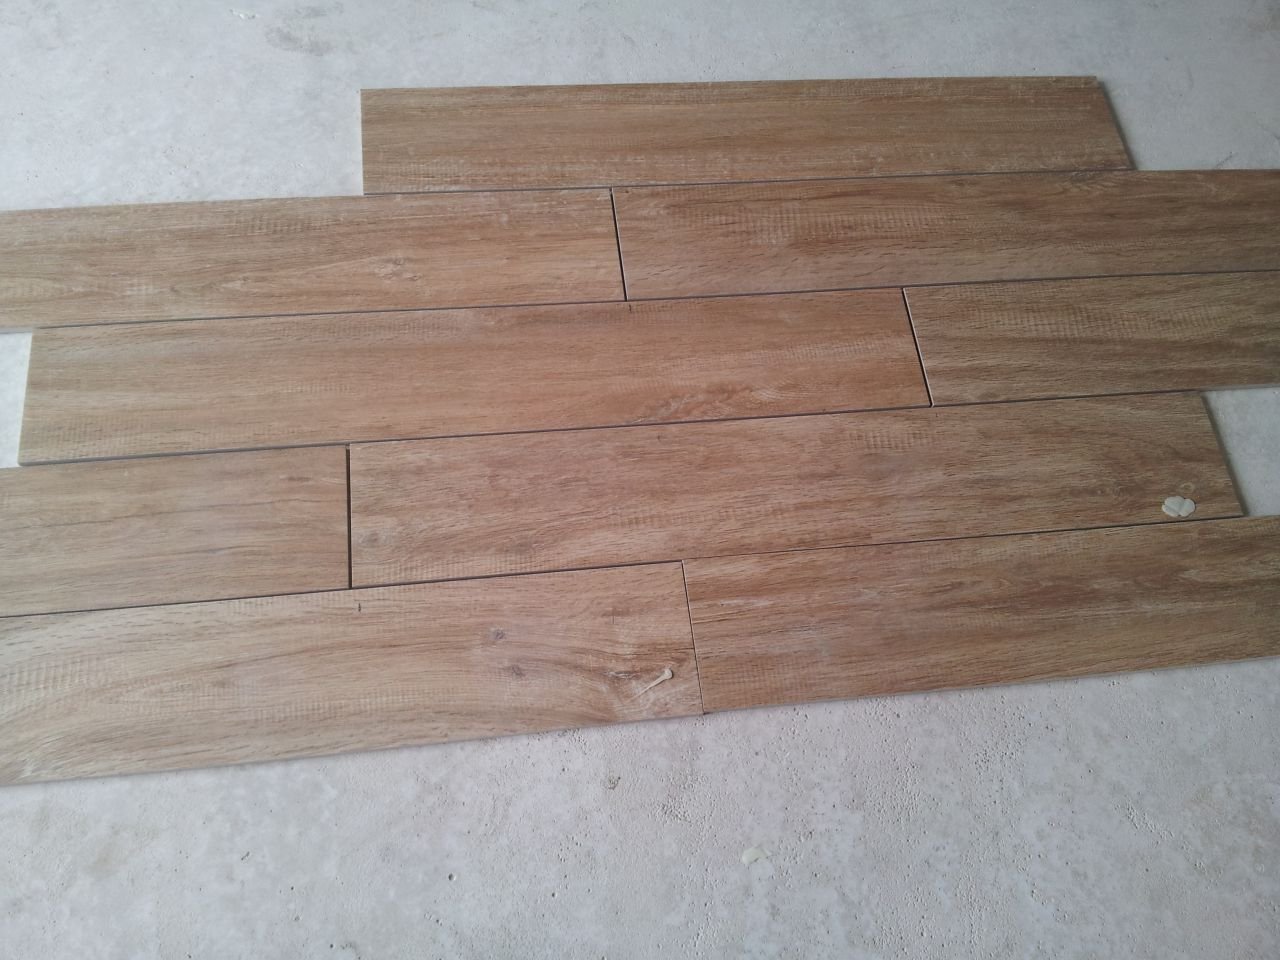 Sens et technique de pose pr carrelage imitation parquet for Pose vinyl sur carrelage